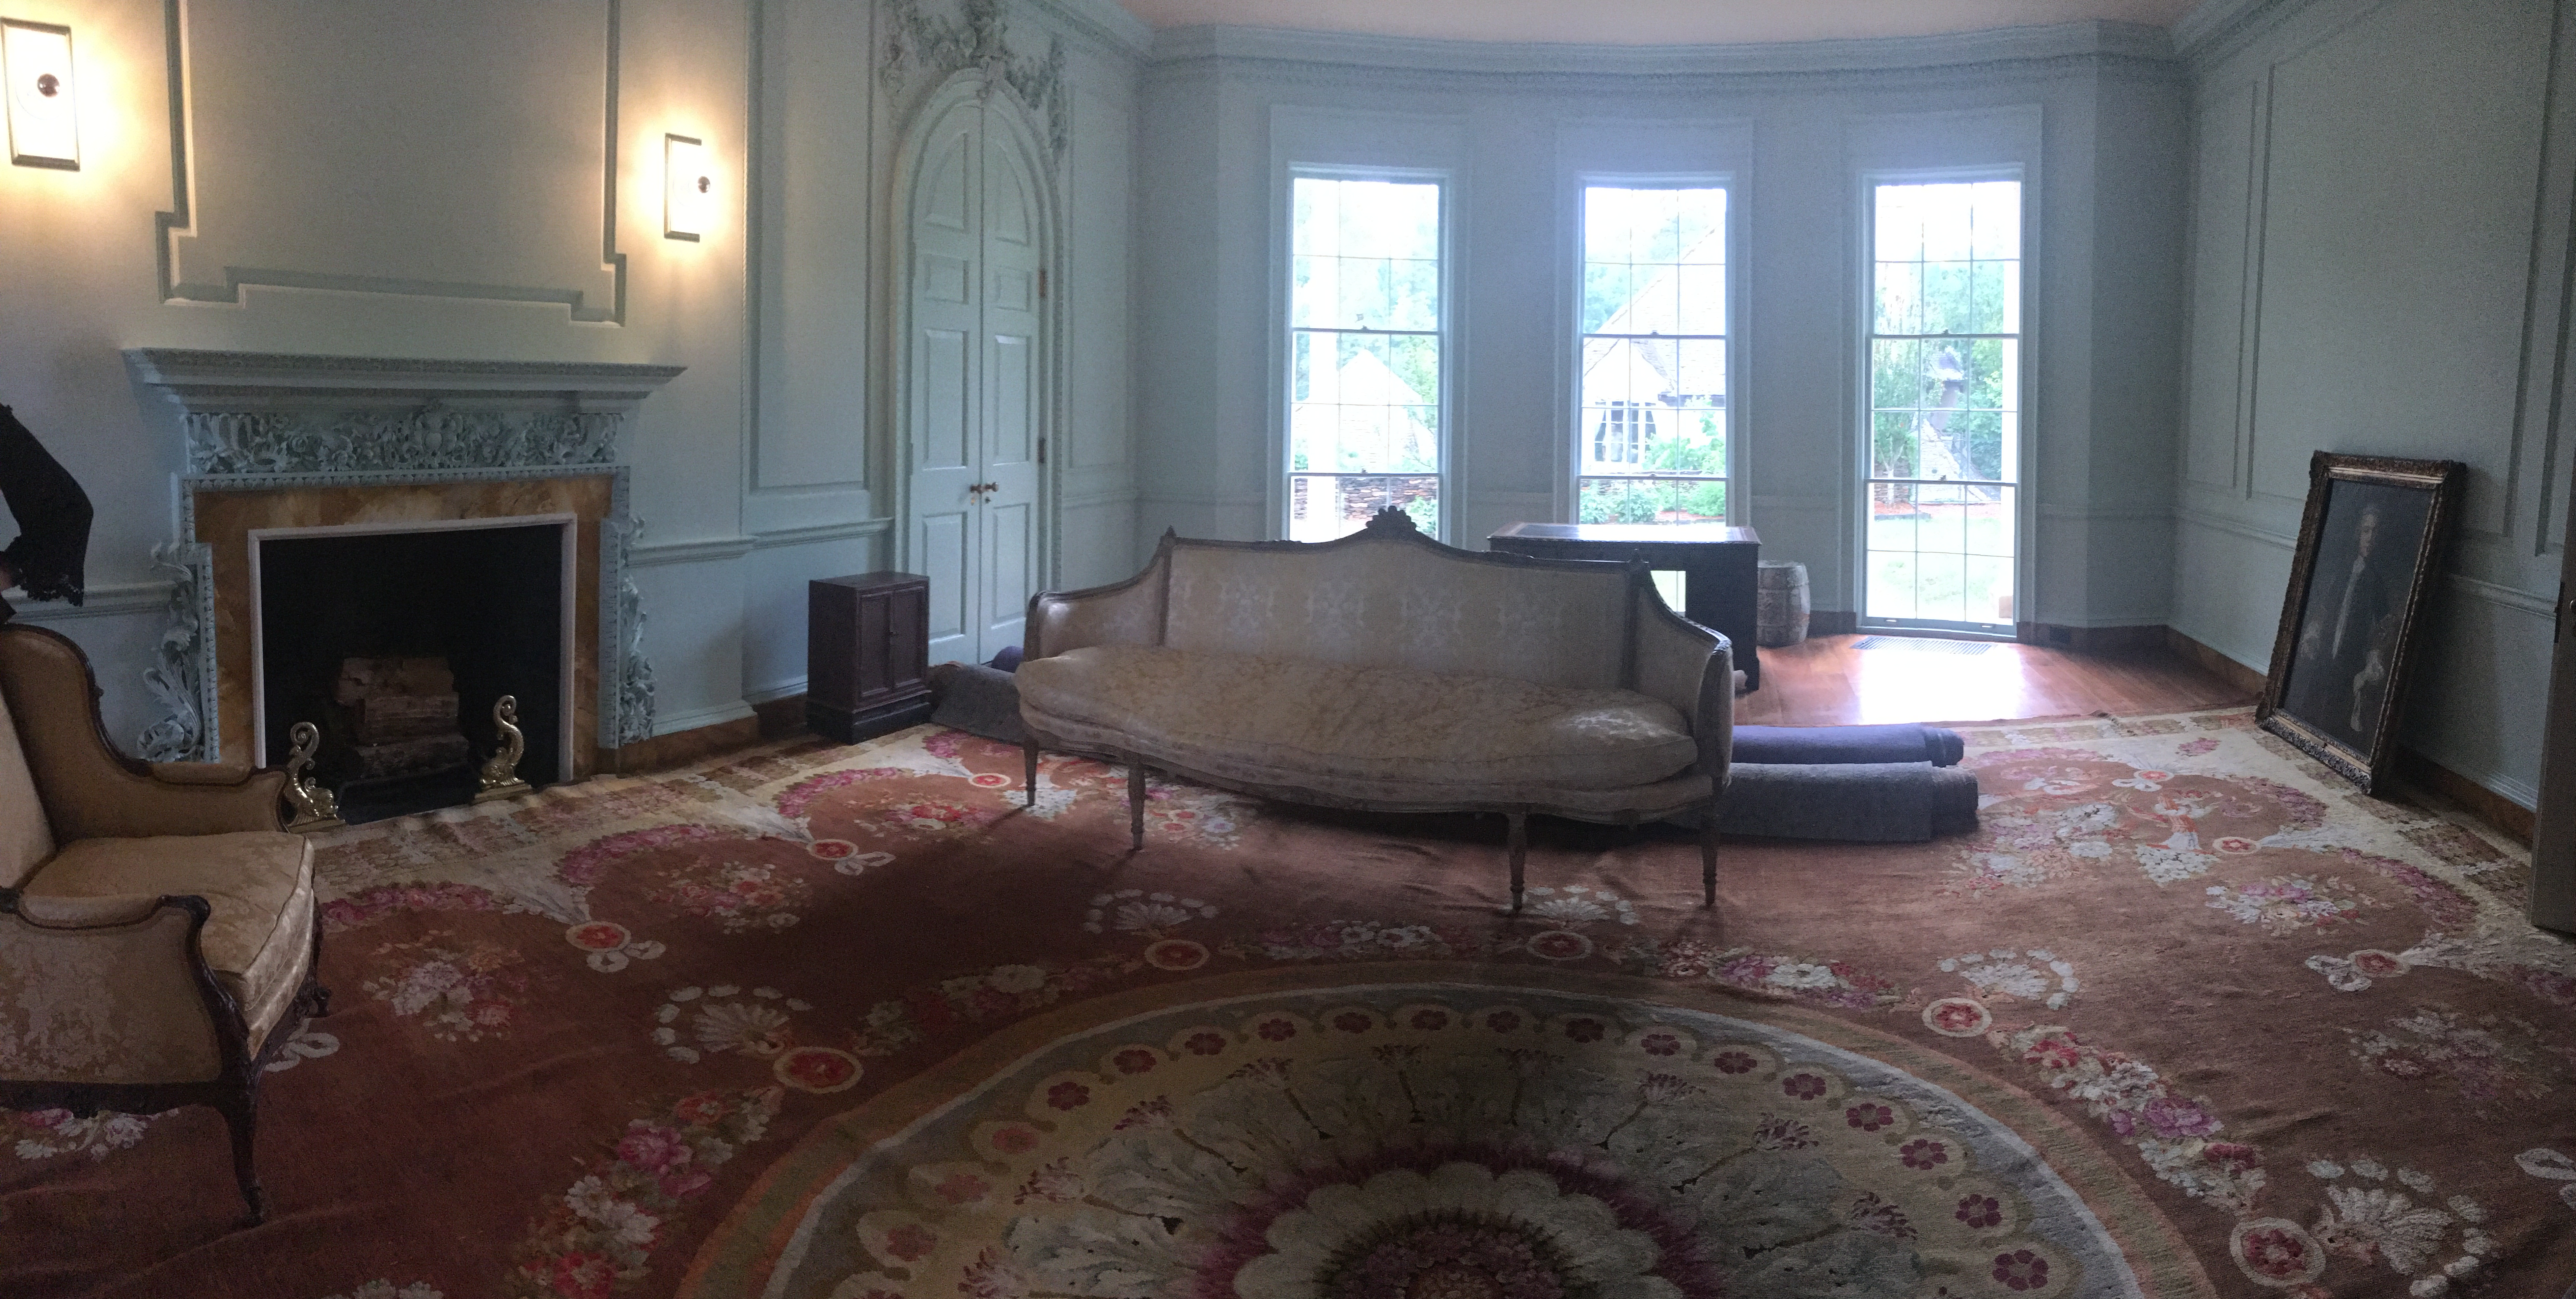 Living Room - furniture and rug are original to home.